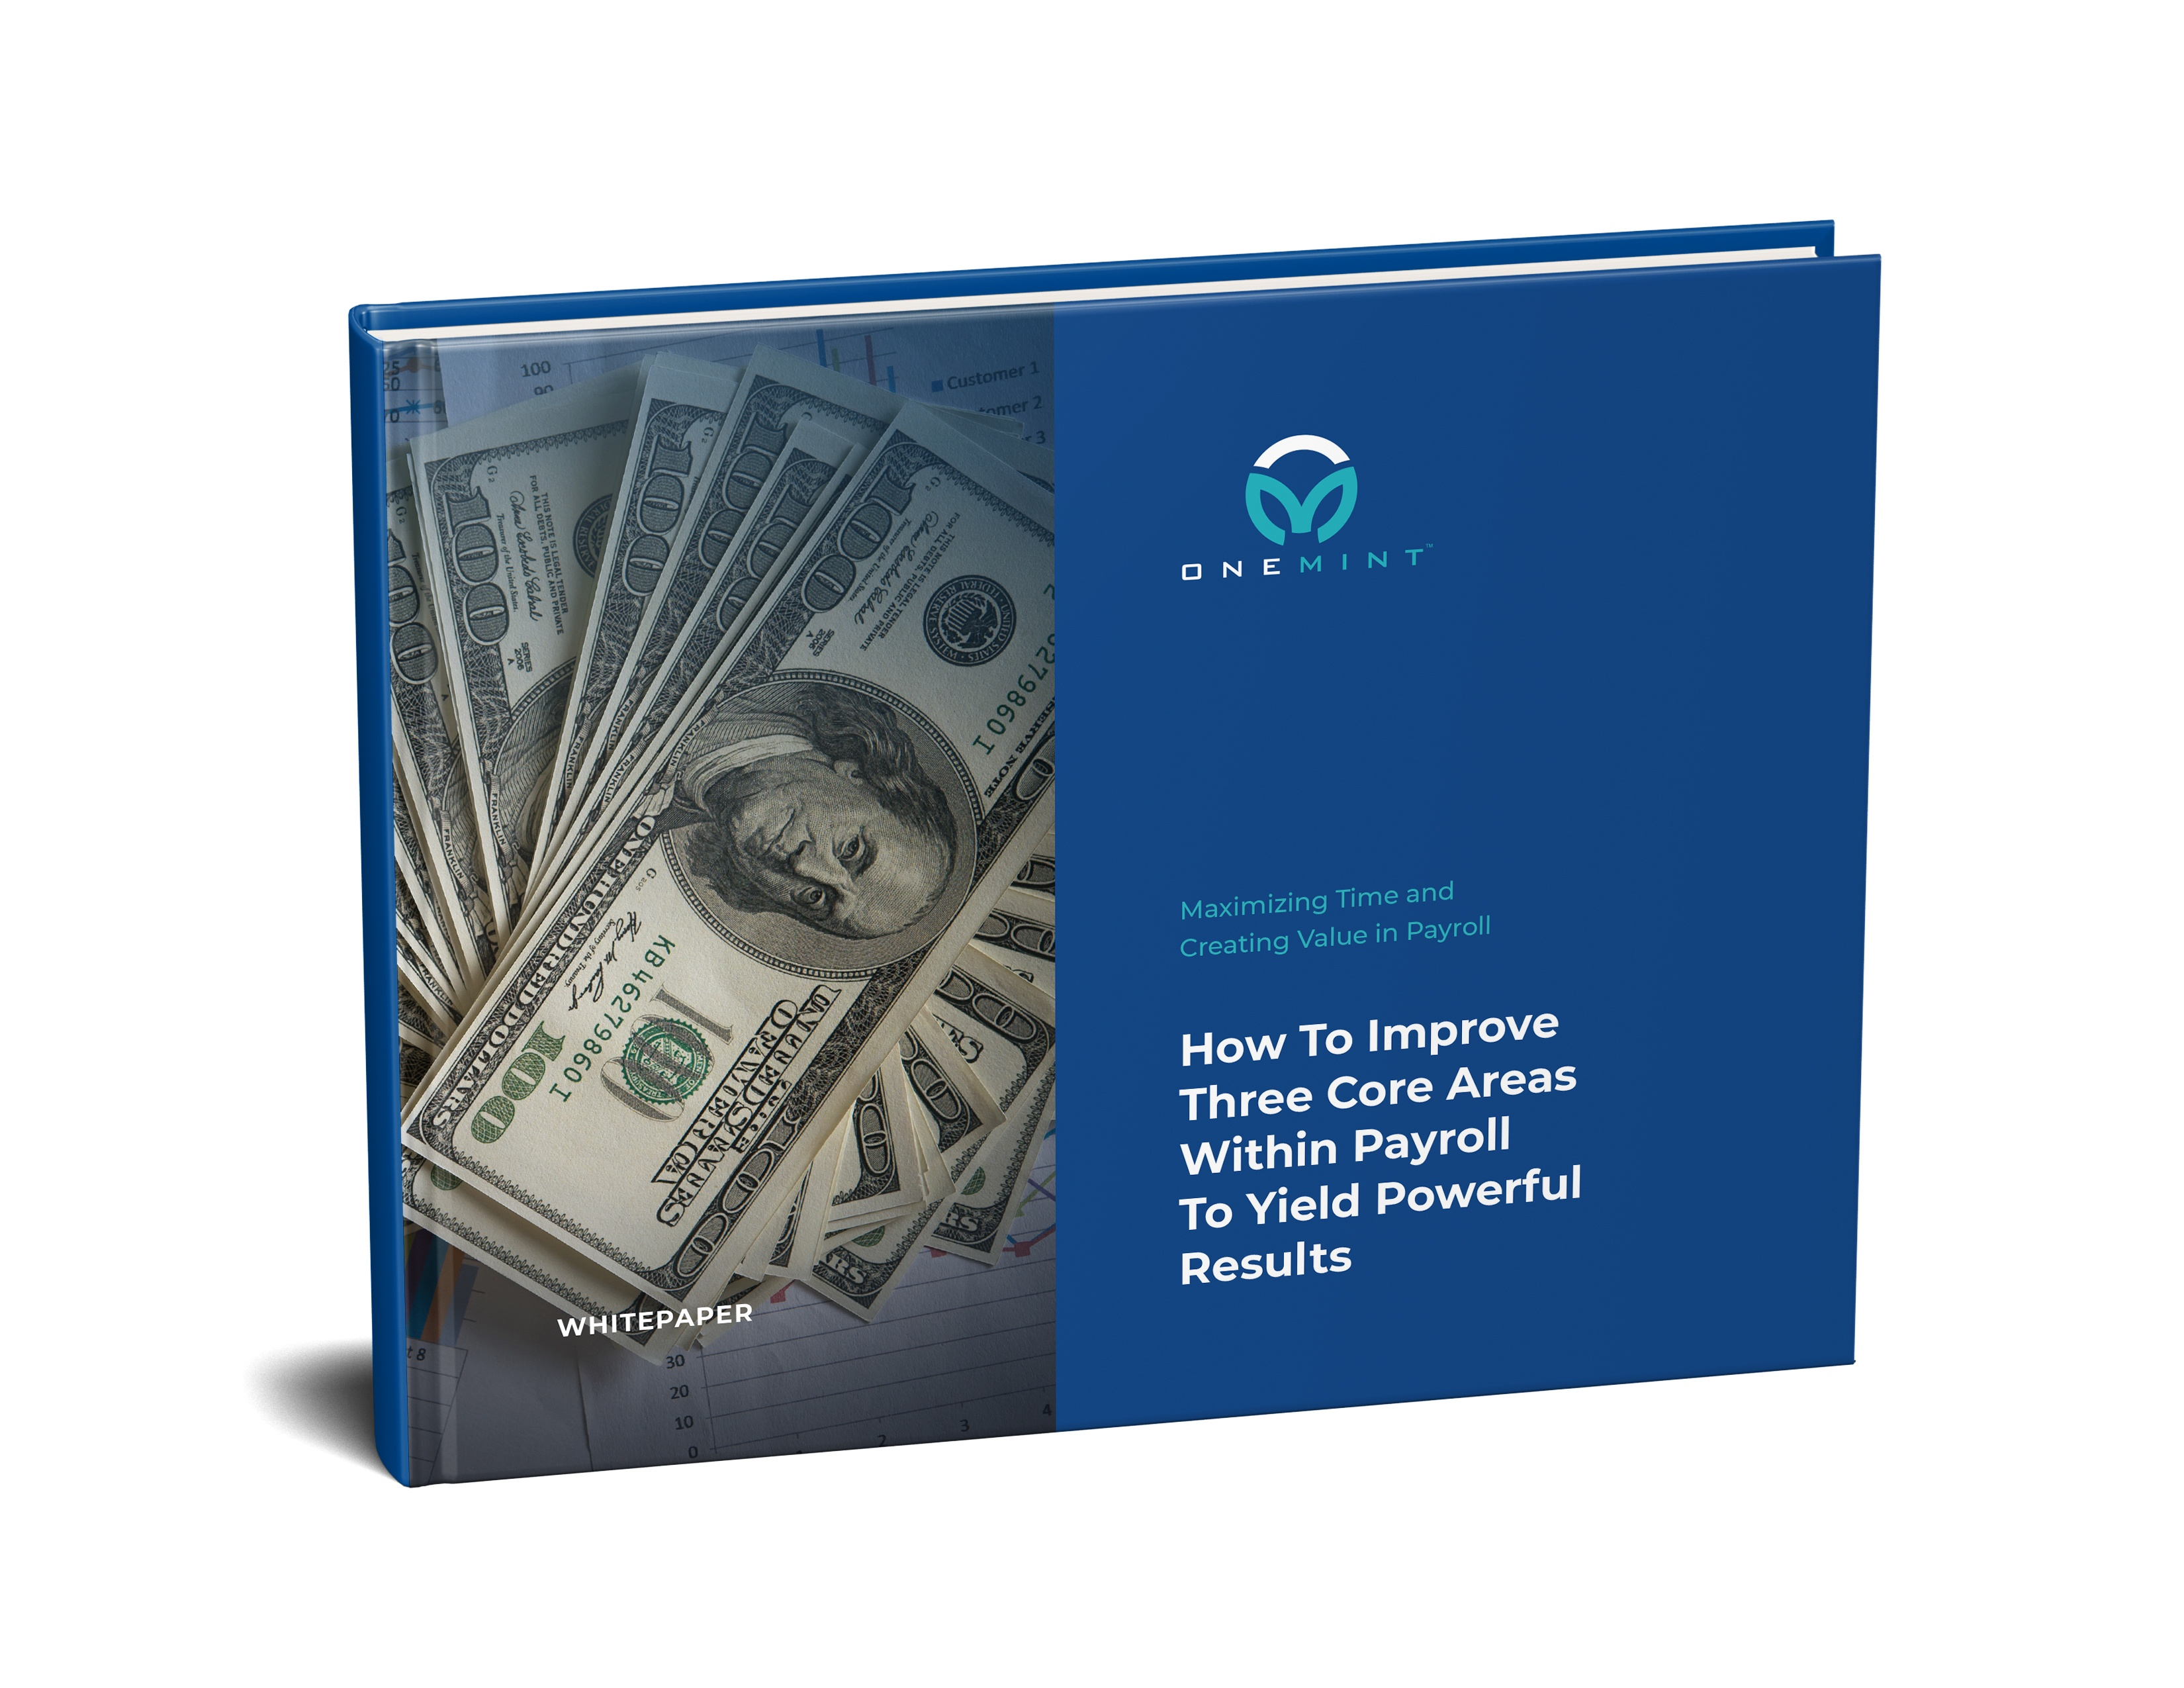 Whitepaper - Maximizing Time in Creating Value in Payroll